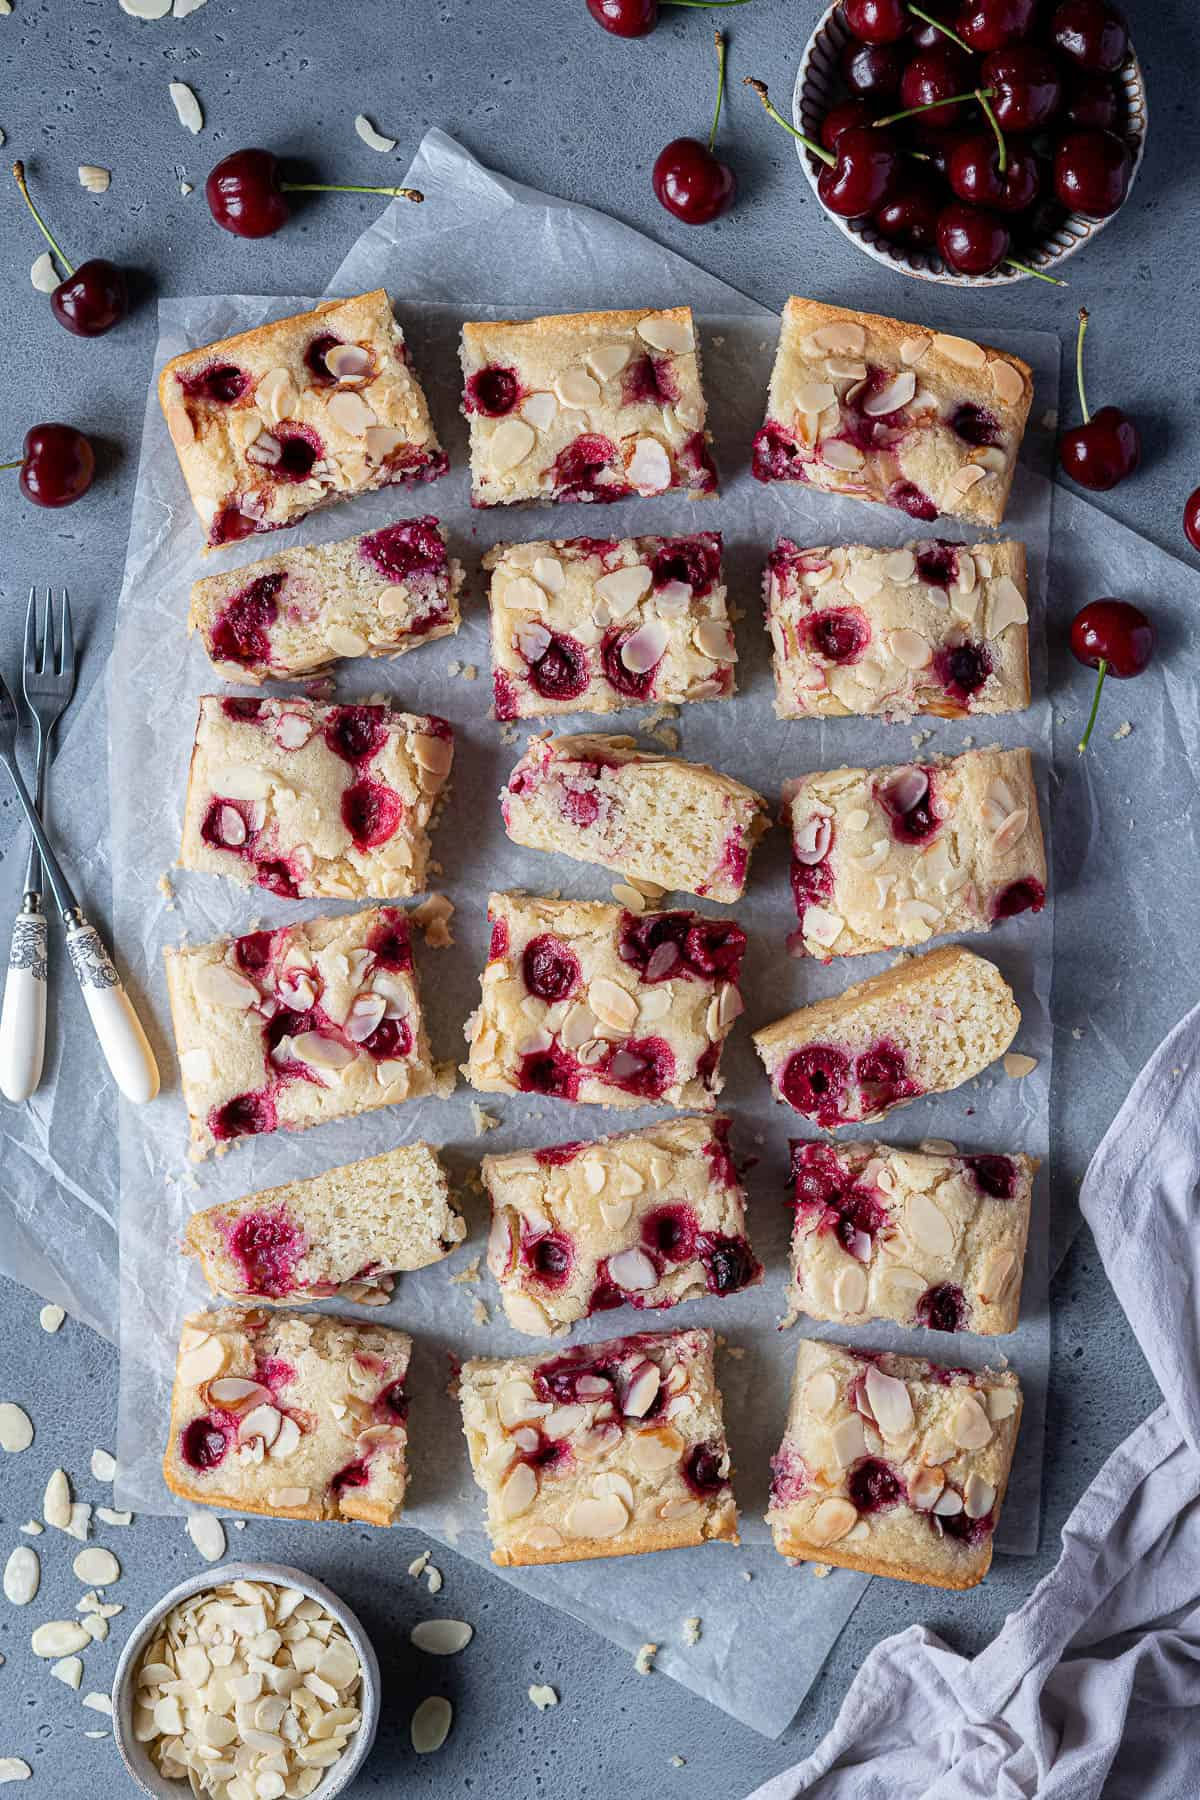 Vegan cherry almond cake cut into squares on a sheet of baking parchment.